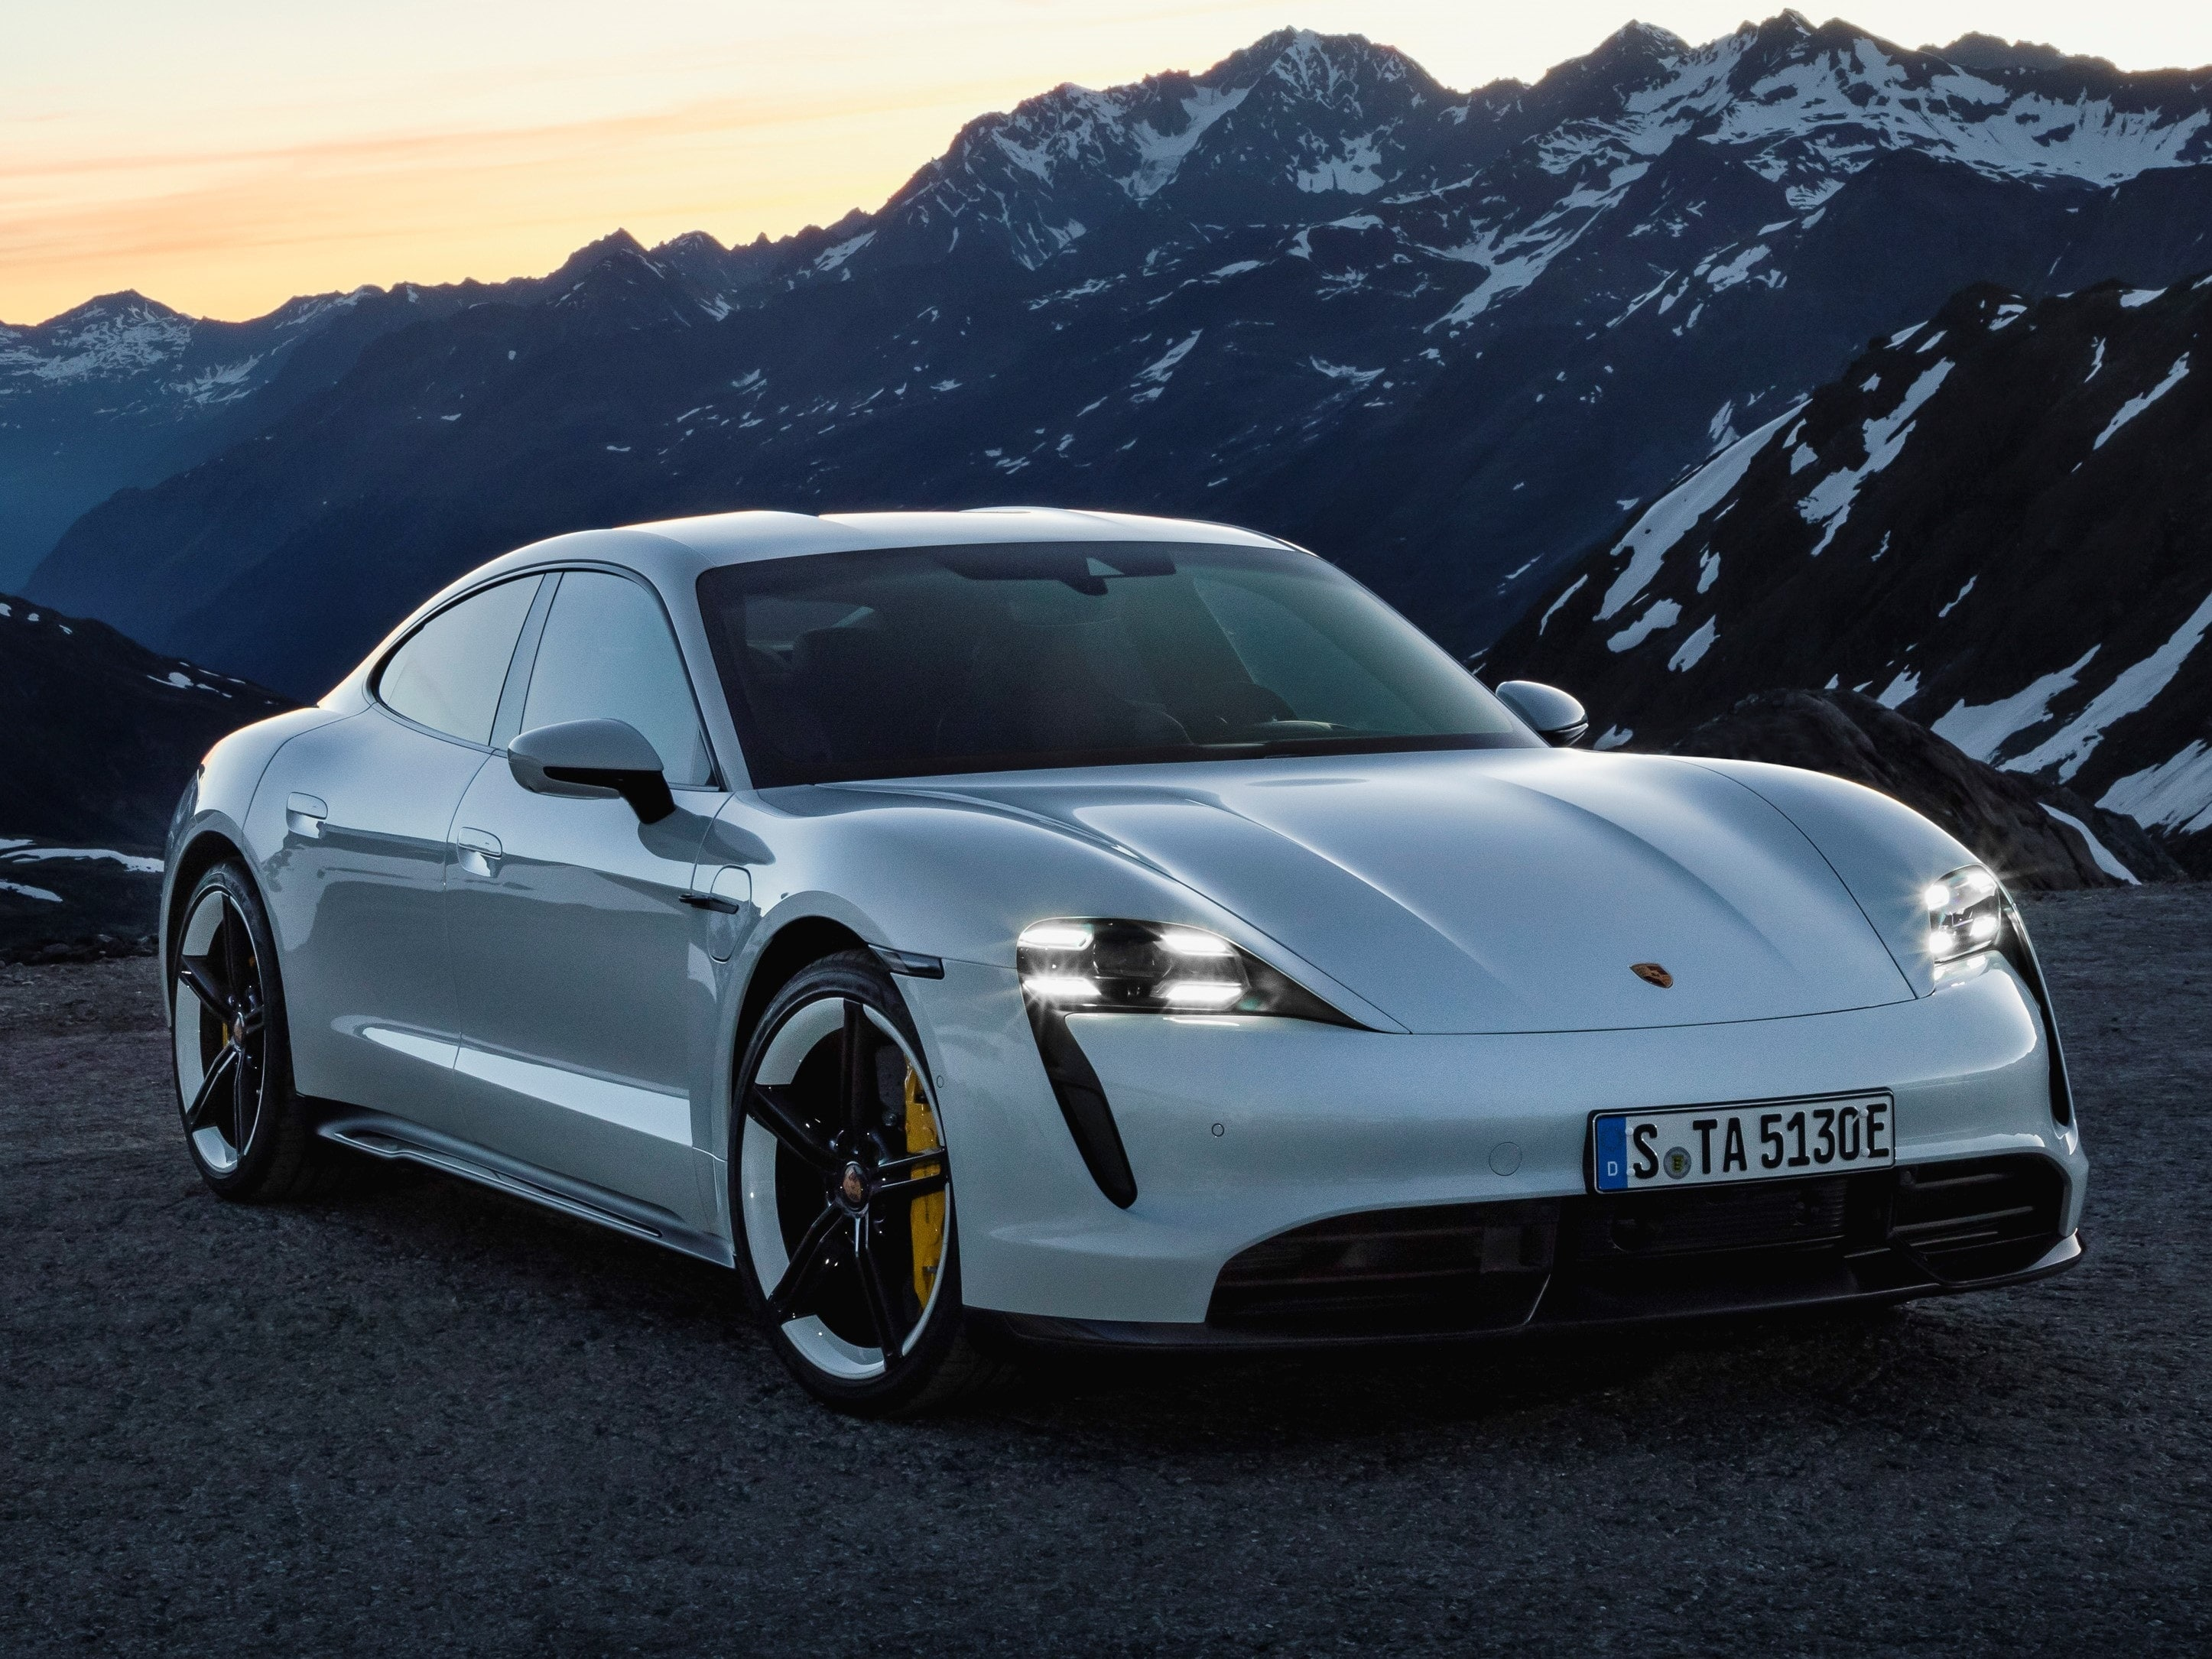 Porsche Taycan Range Charge Times 0 60 And More Kelley Blue Book